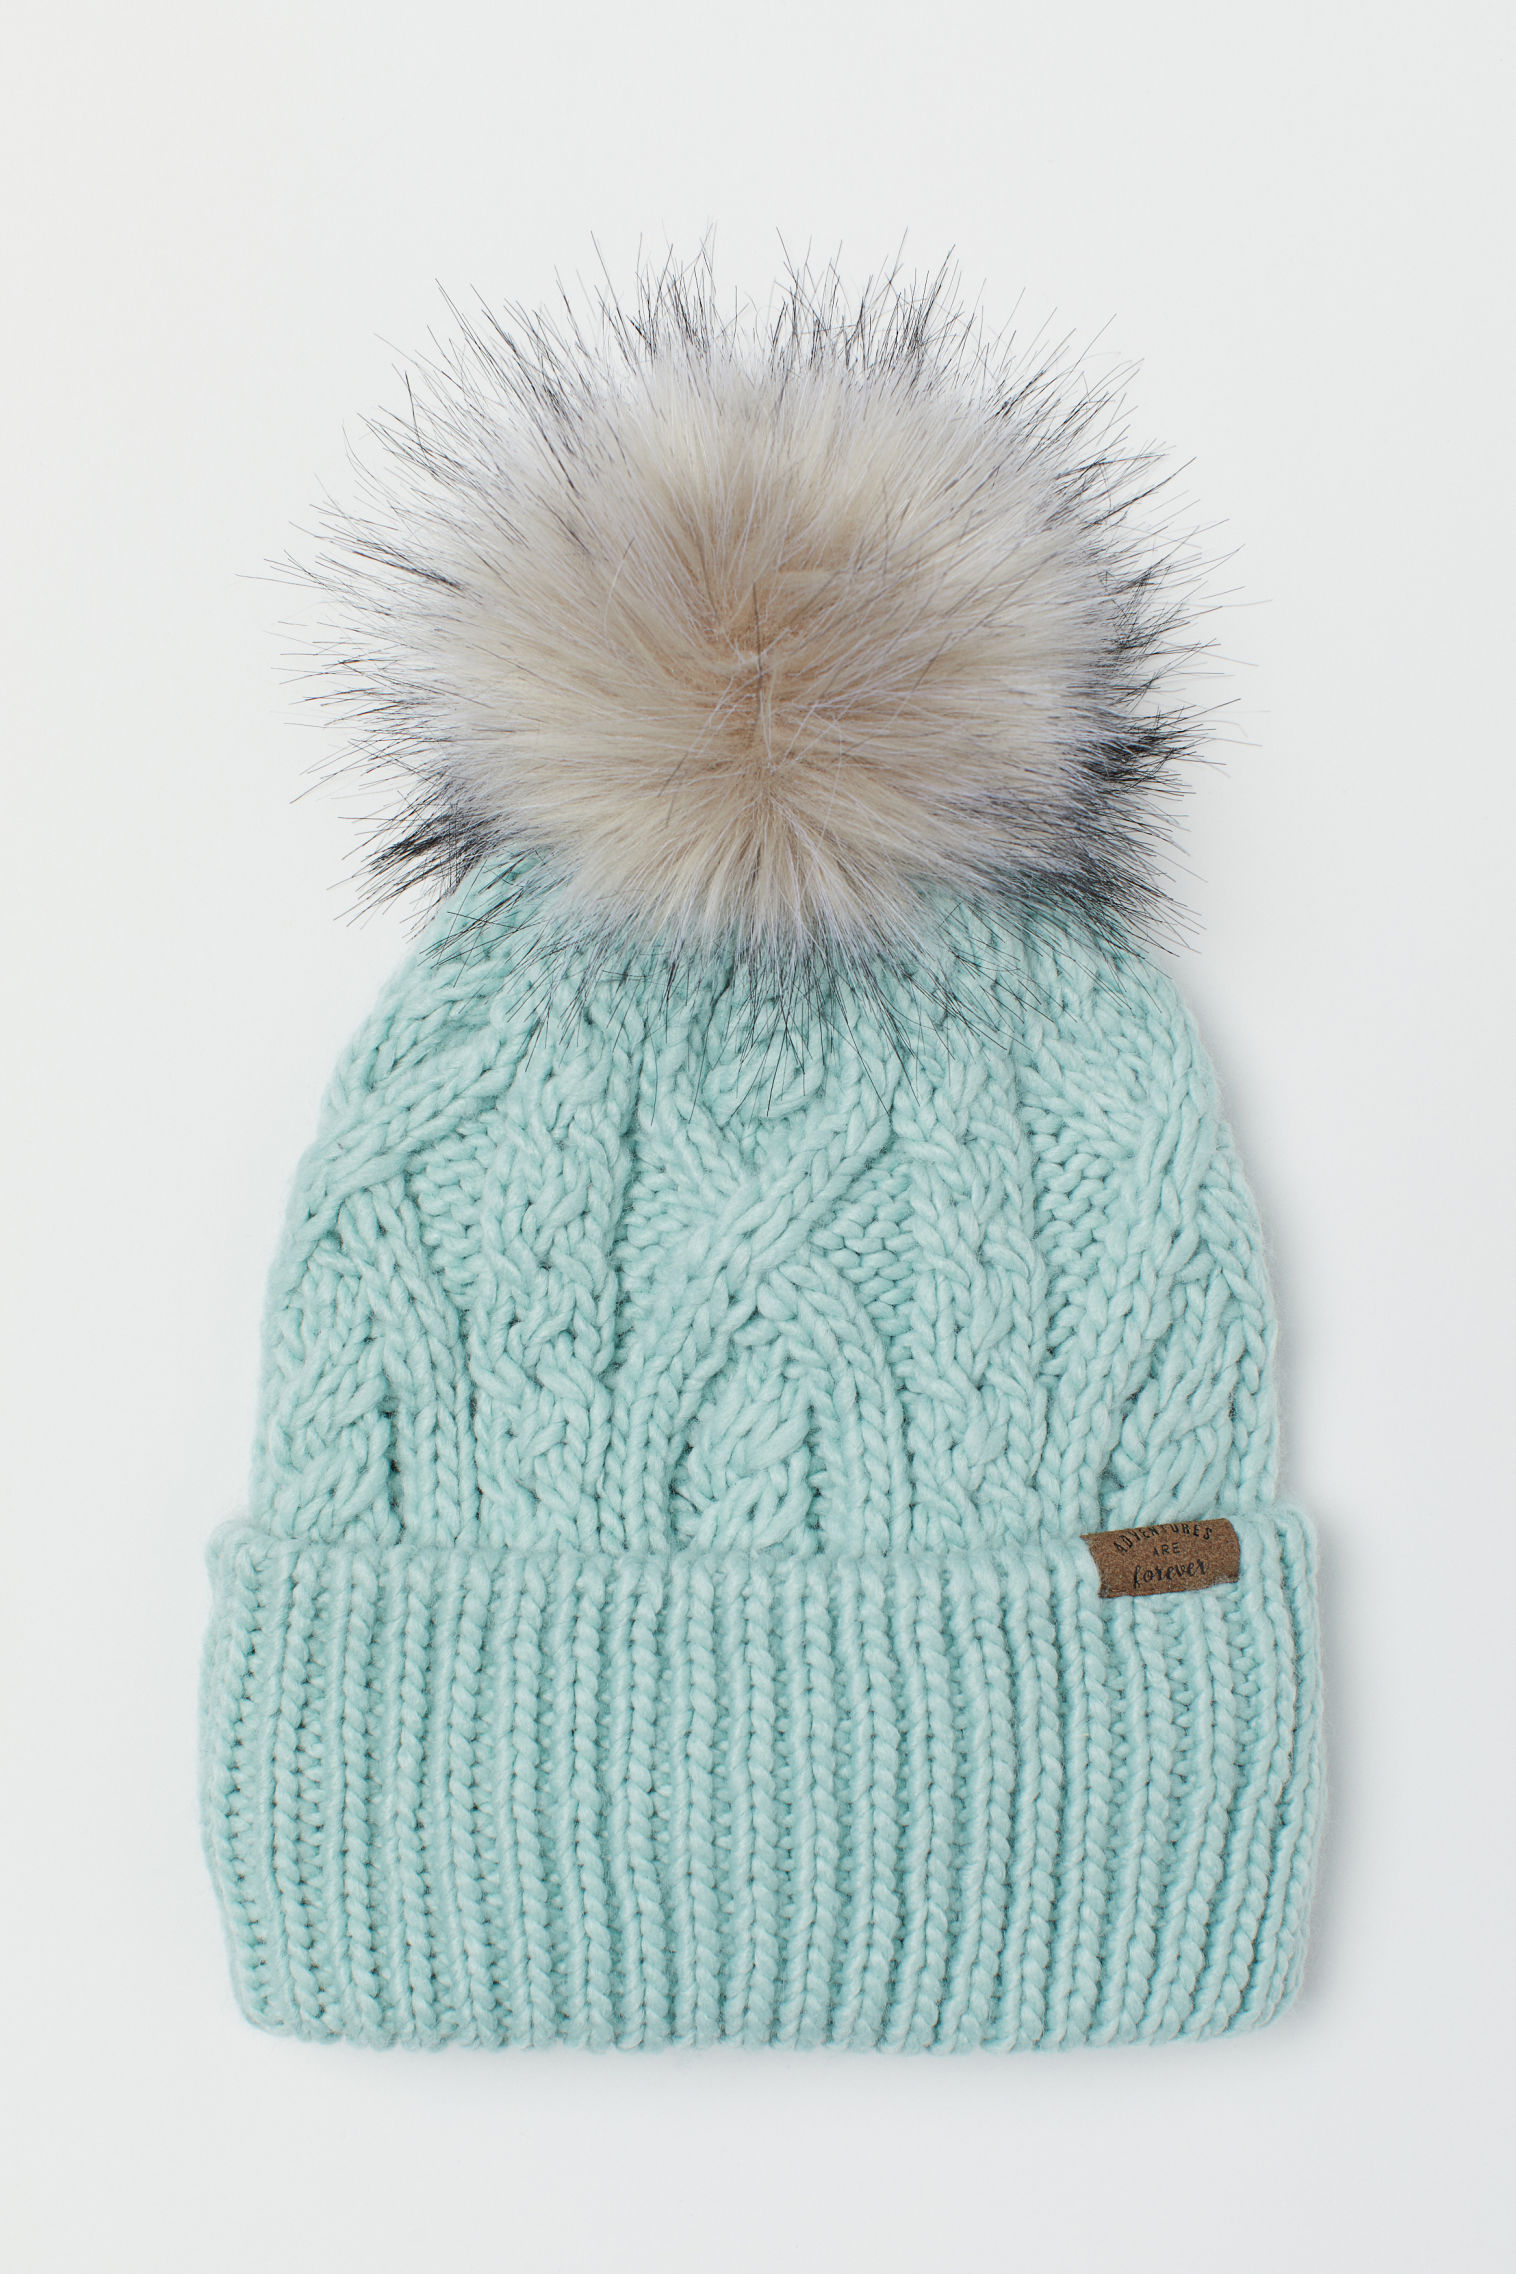 ebdc7adcf89 Cable-knit hat ...